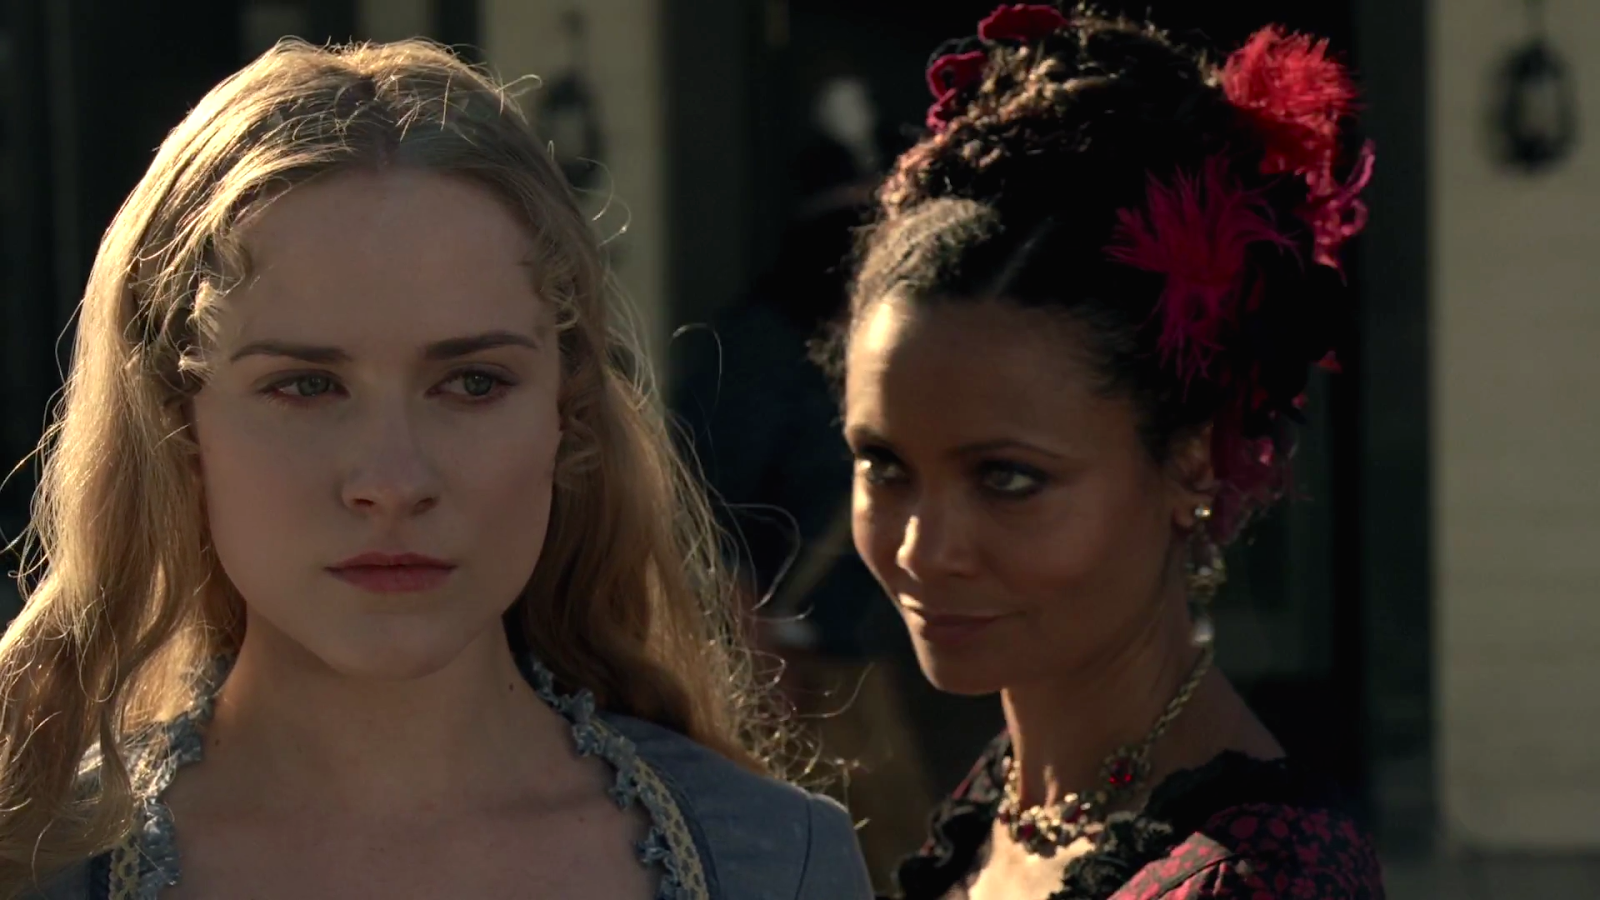 Dolores Abernathy and Maeve Millay in Westworld